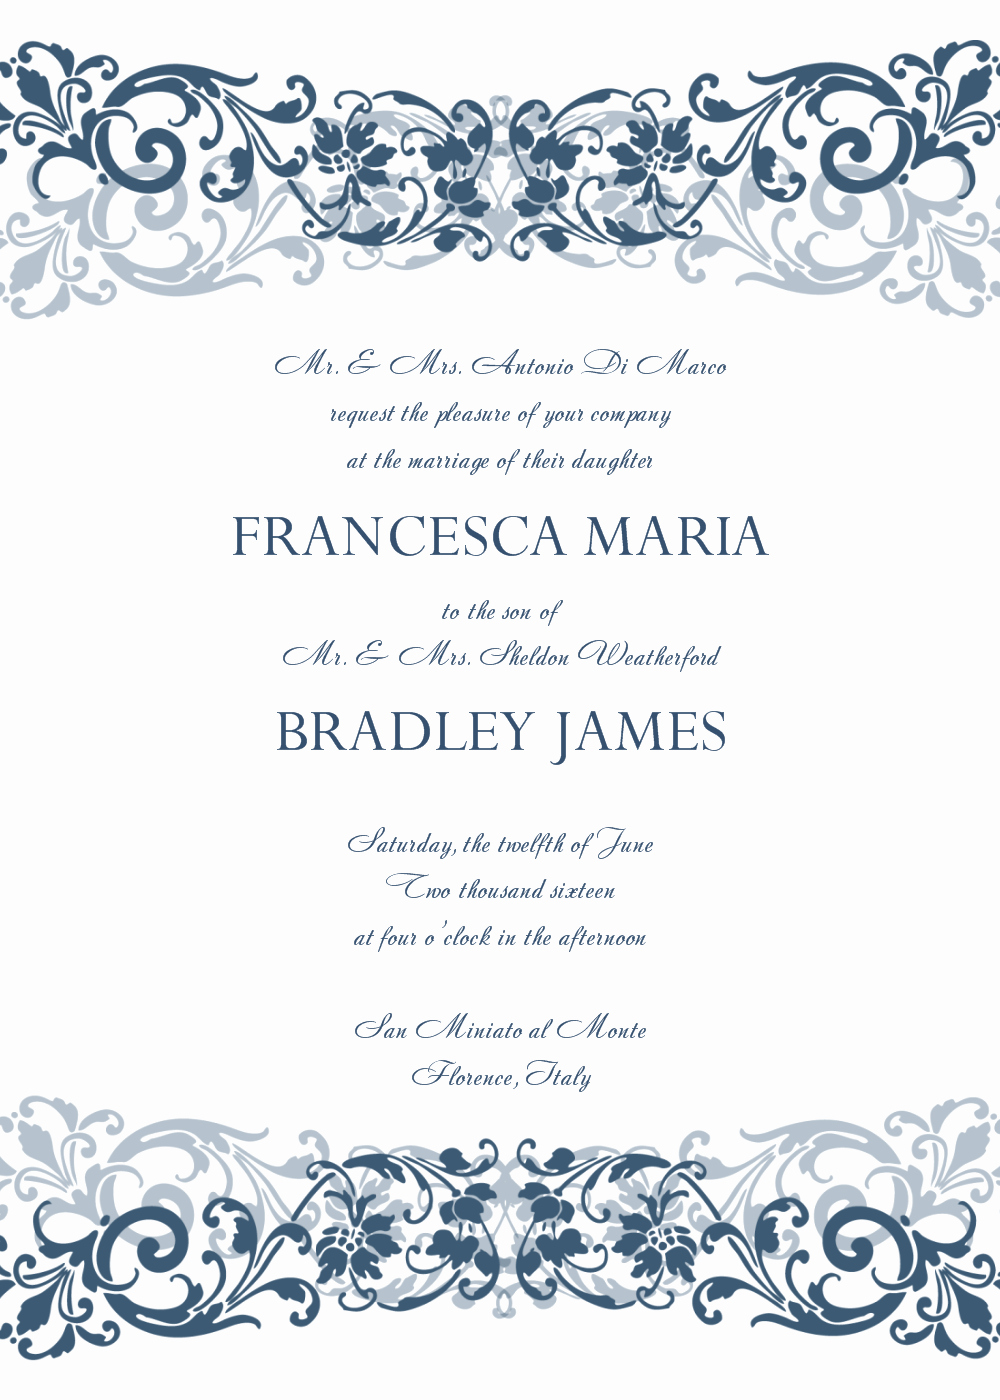 Formal Invite Template Free Unique 8 Free Wedding Invitation Templates Excel Pdf formats